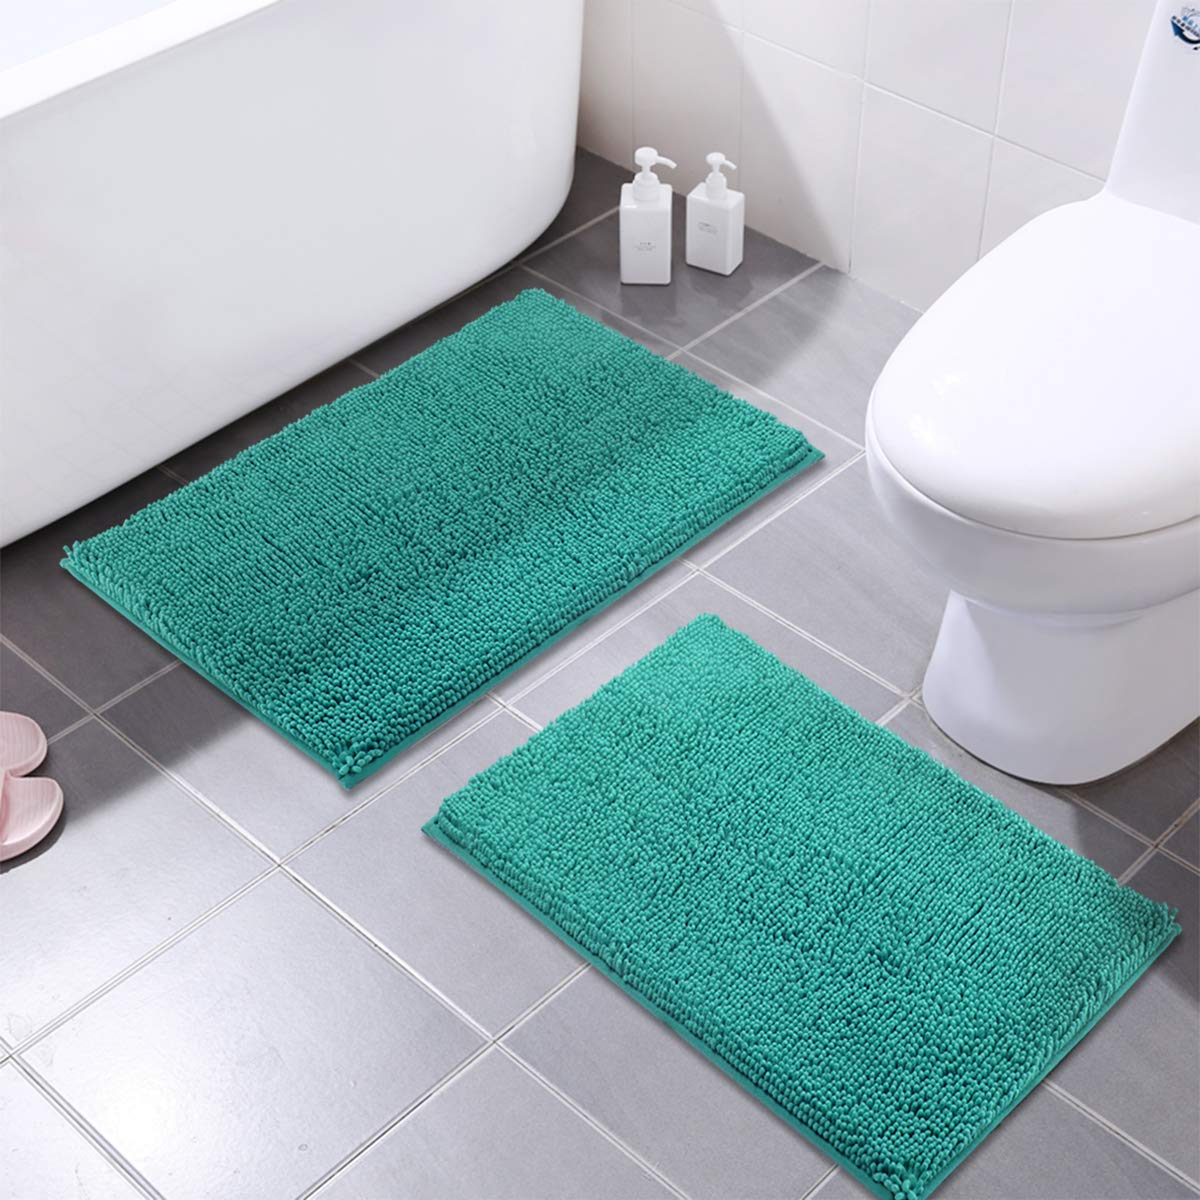 Mayshine 16x24 Inches Non Slip Bathroom Rug Shag Shower Mat Machine Washable Bath Mats With Water Absorbent Soft Microfibers 2 Pack Turquoise